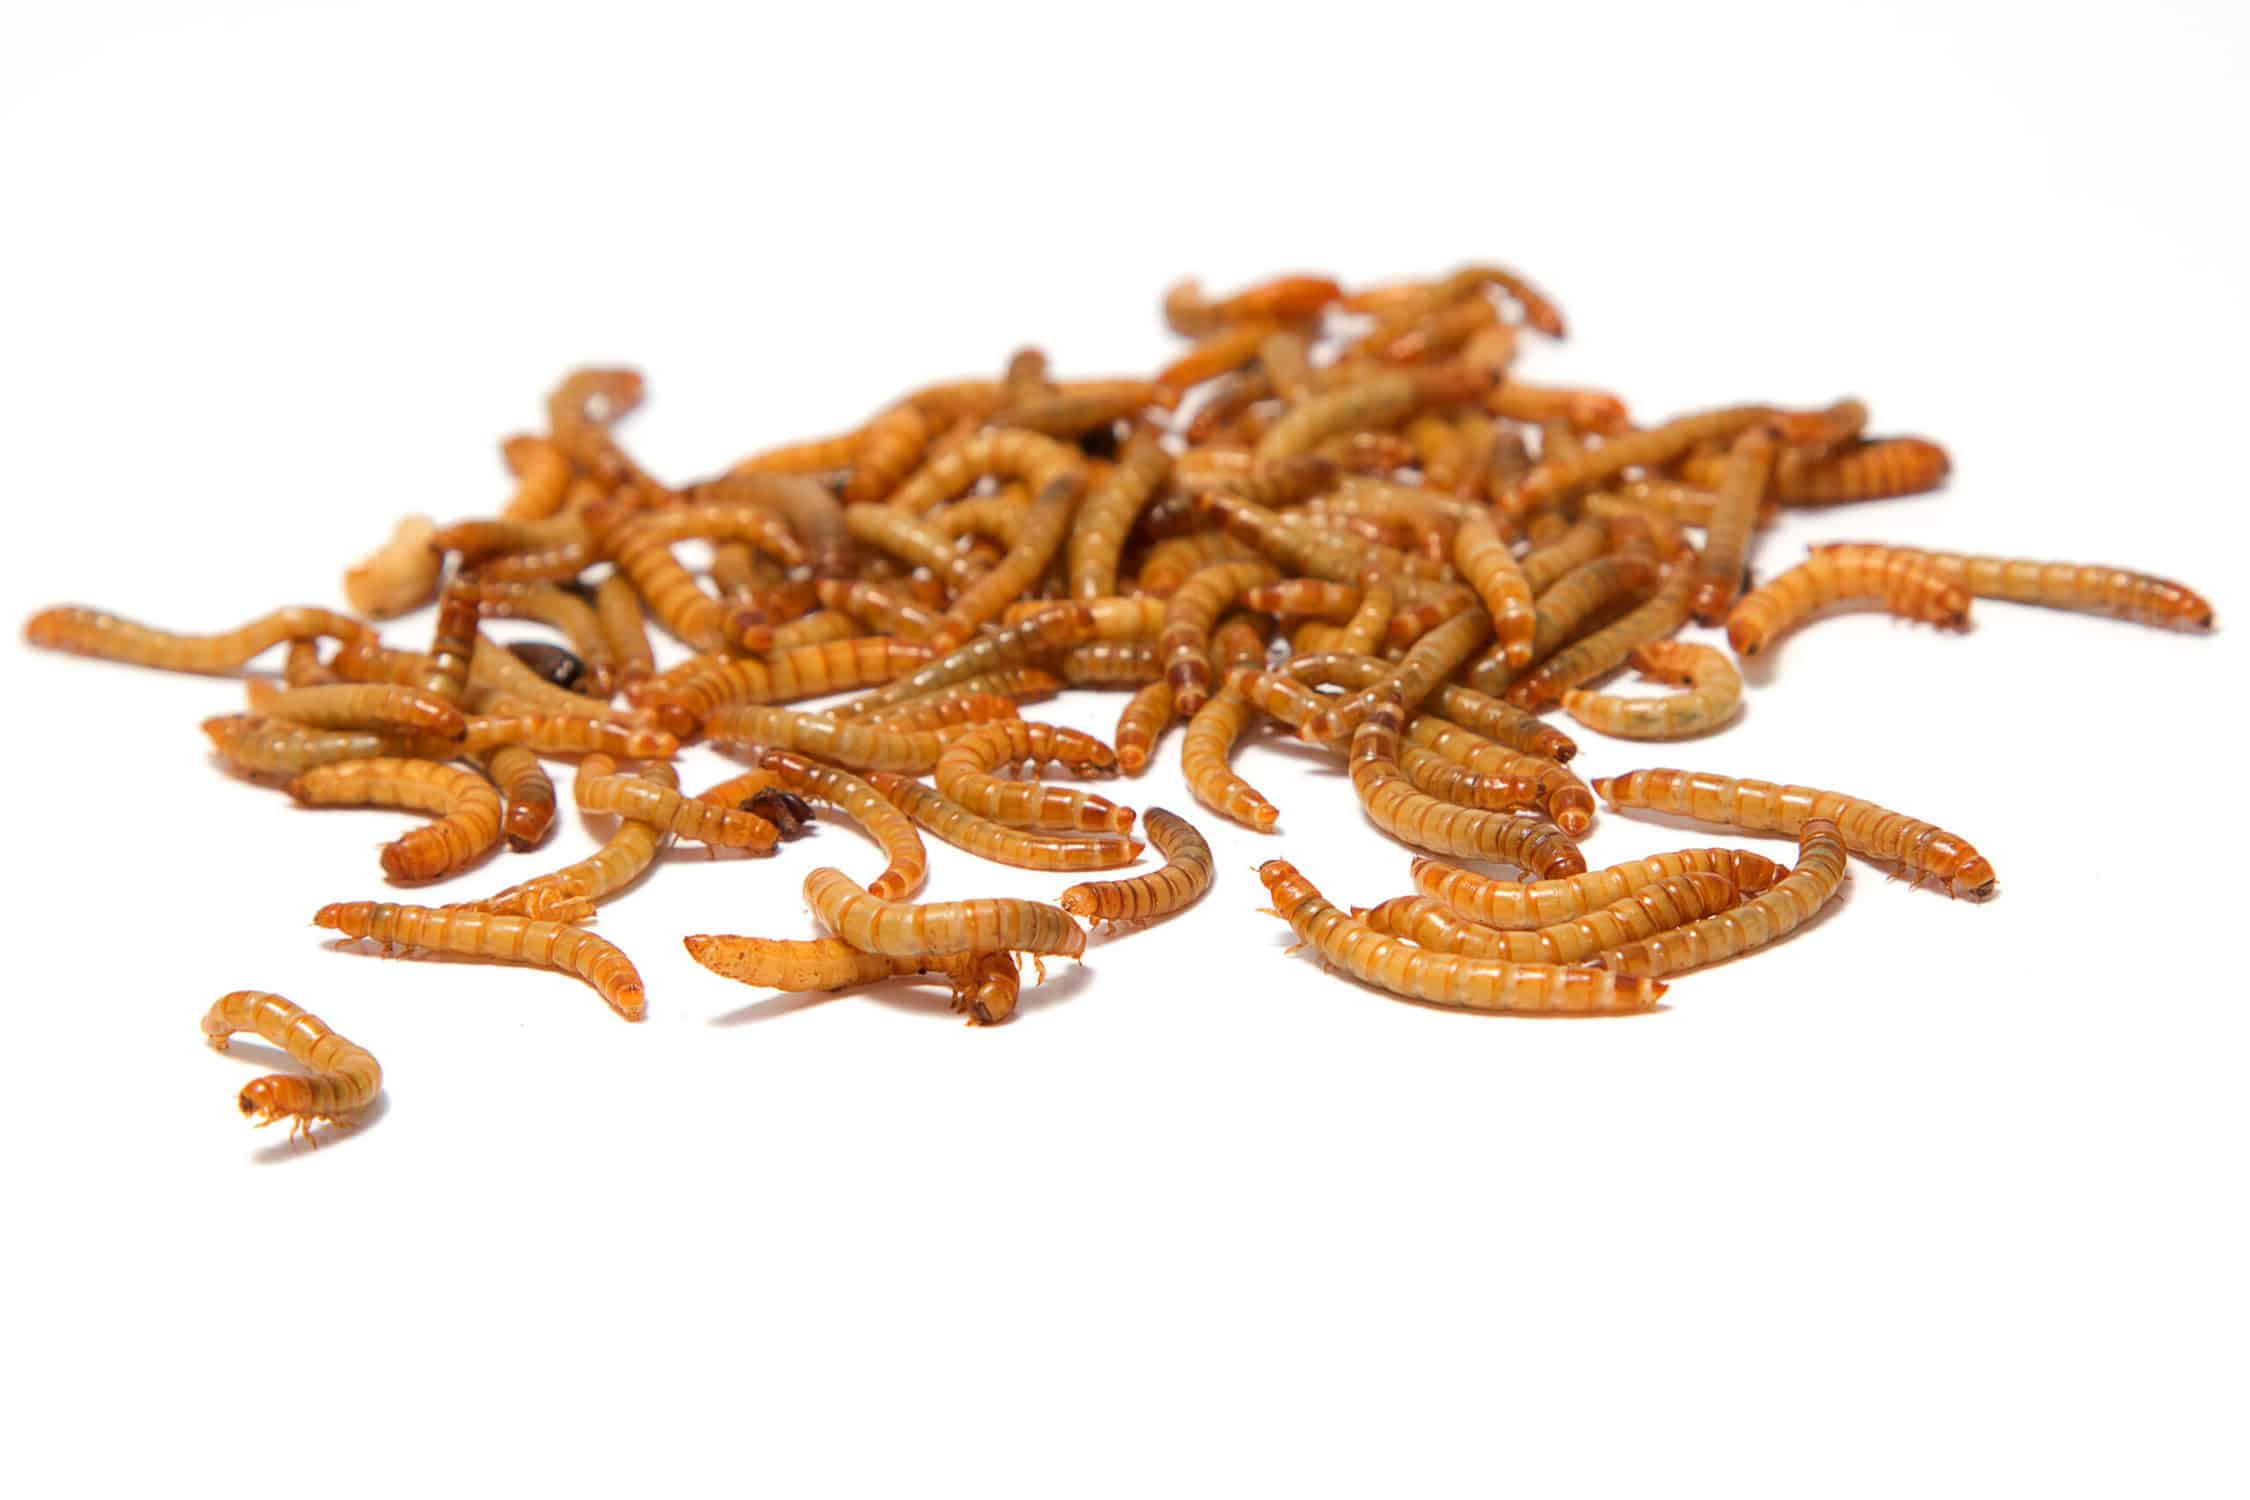 mealworms on white background